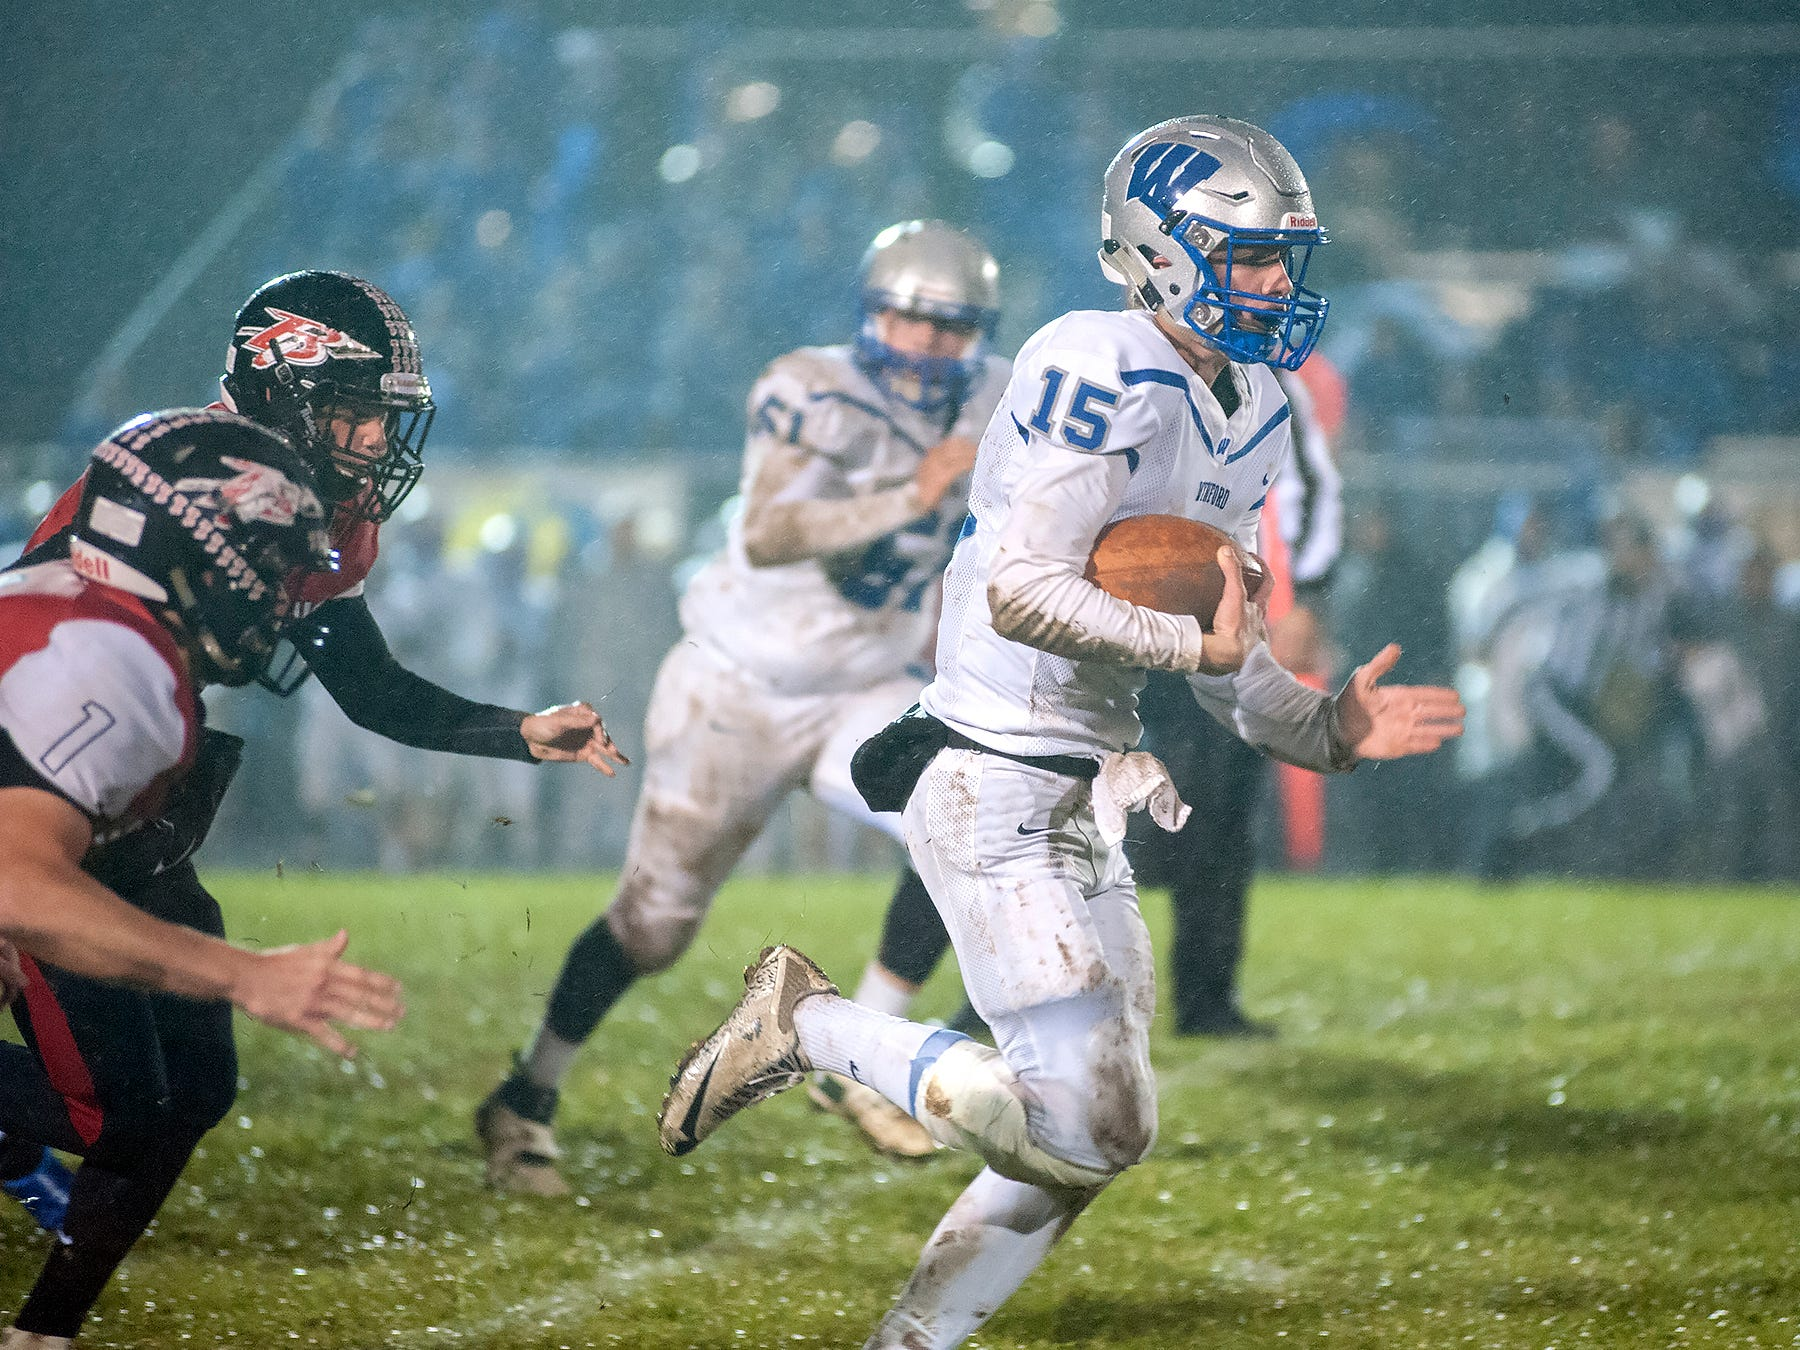 Wynford quarterback Dustin Brady scrambles with the ball.